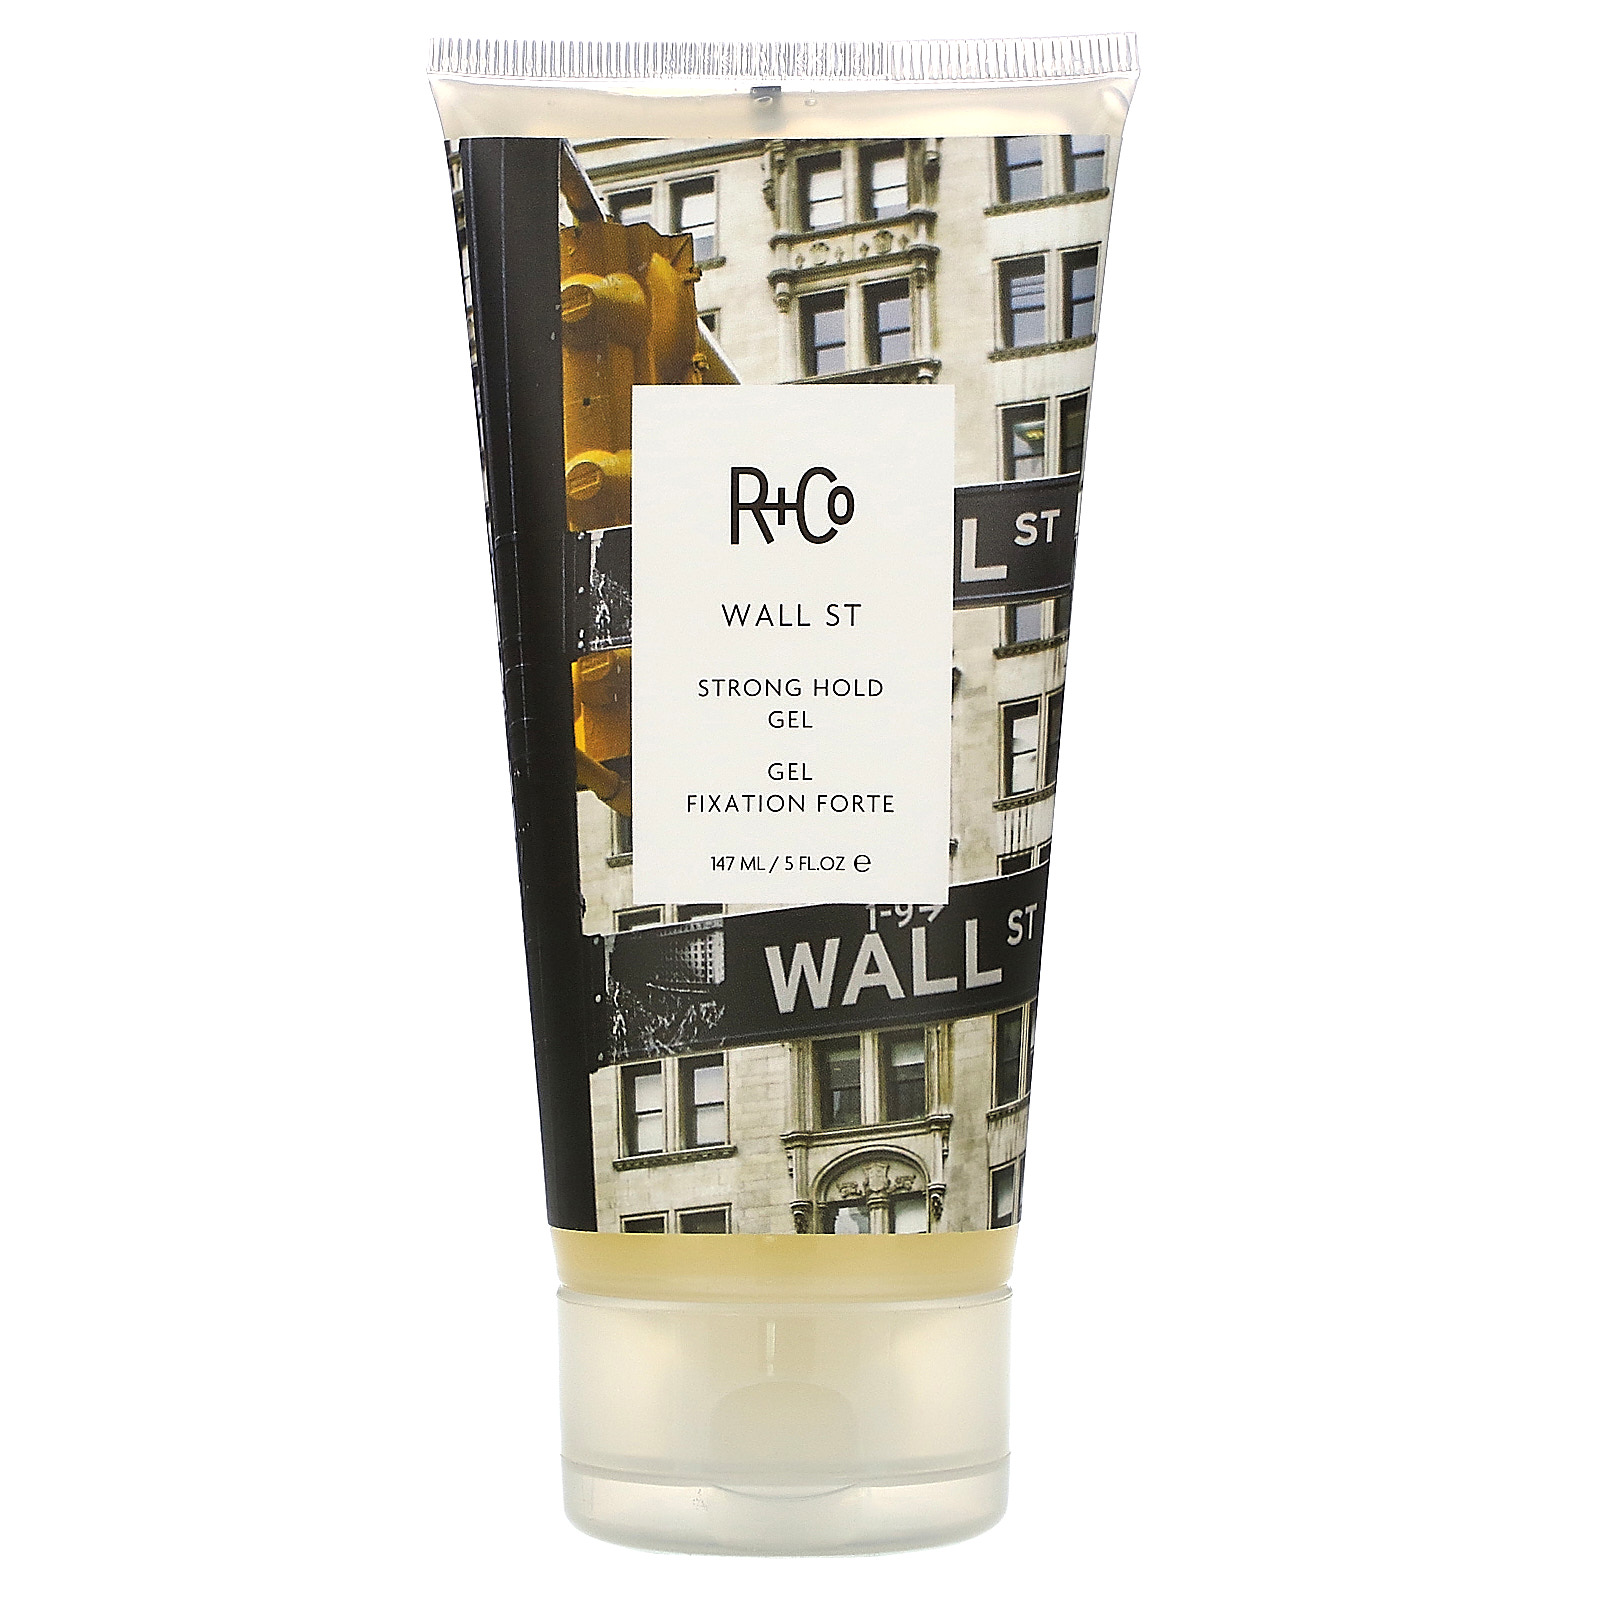 R+Co, Wall ST, Strong Hold Gel, 5 fl oz (147 ml)